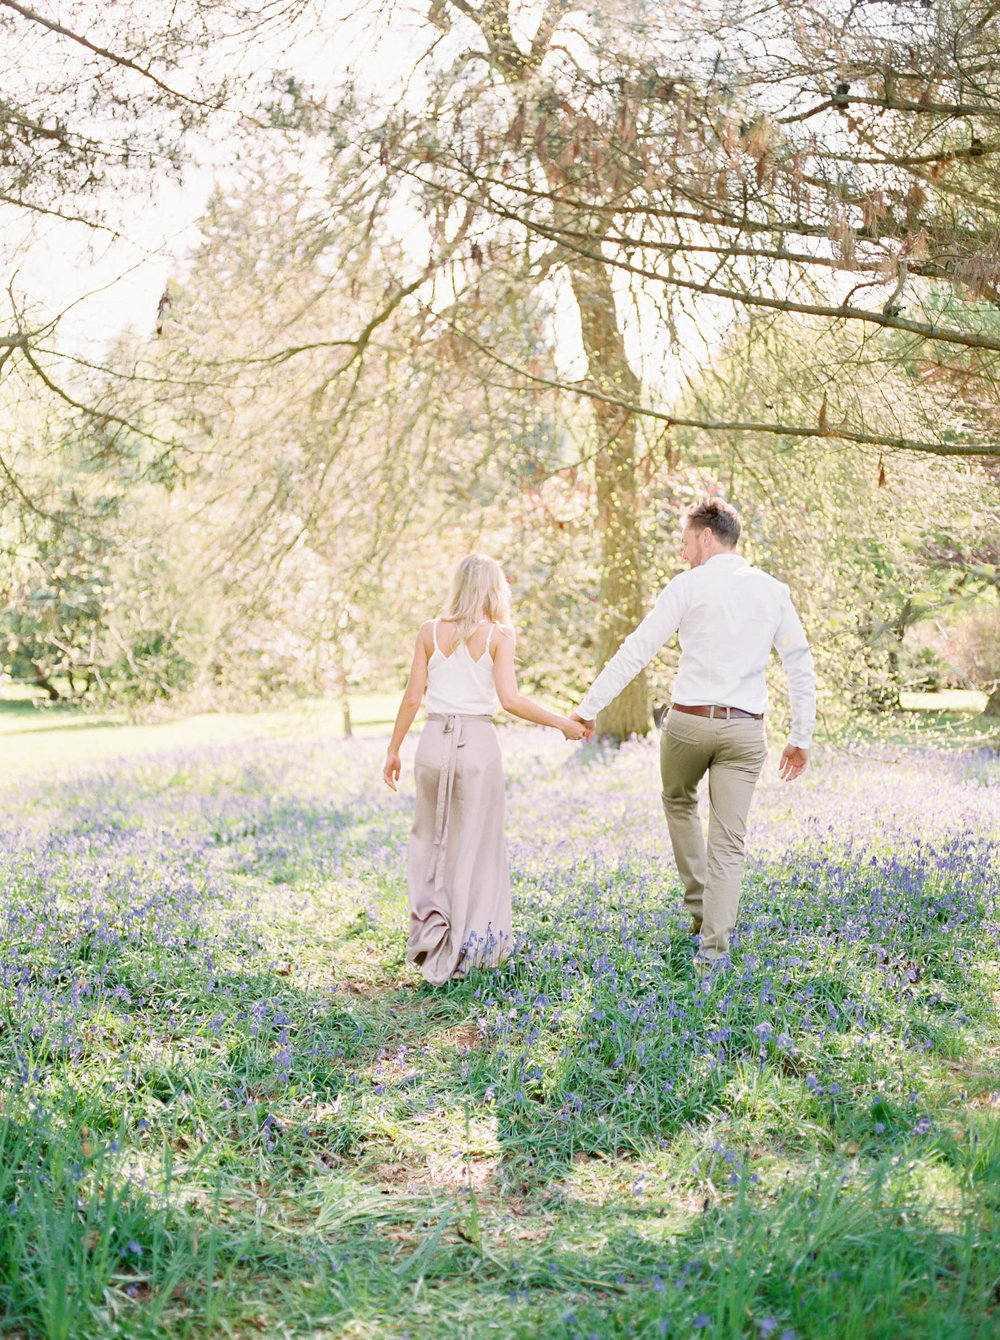 Amy O'Boyle Photography- Destination & UK Fine Art Film Wedding Photographer- Sheffield Park Garden National Trust Spring Engagement Shoot-9.jpg